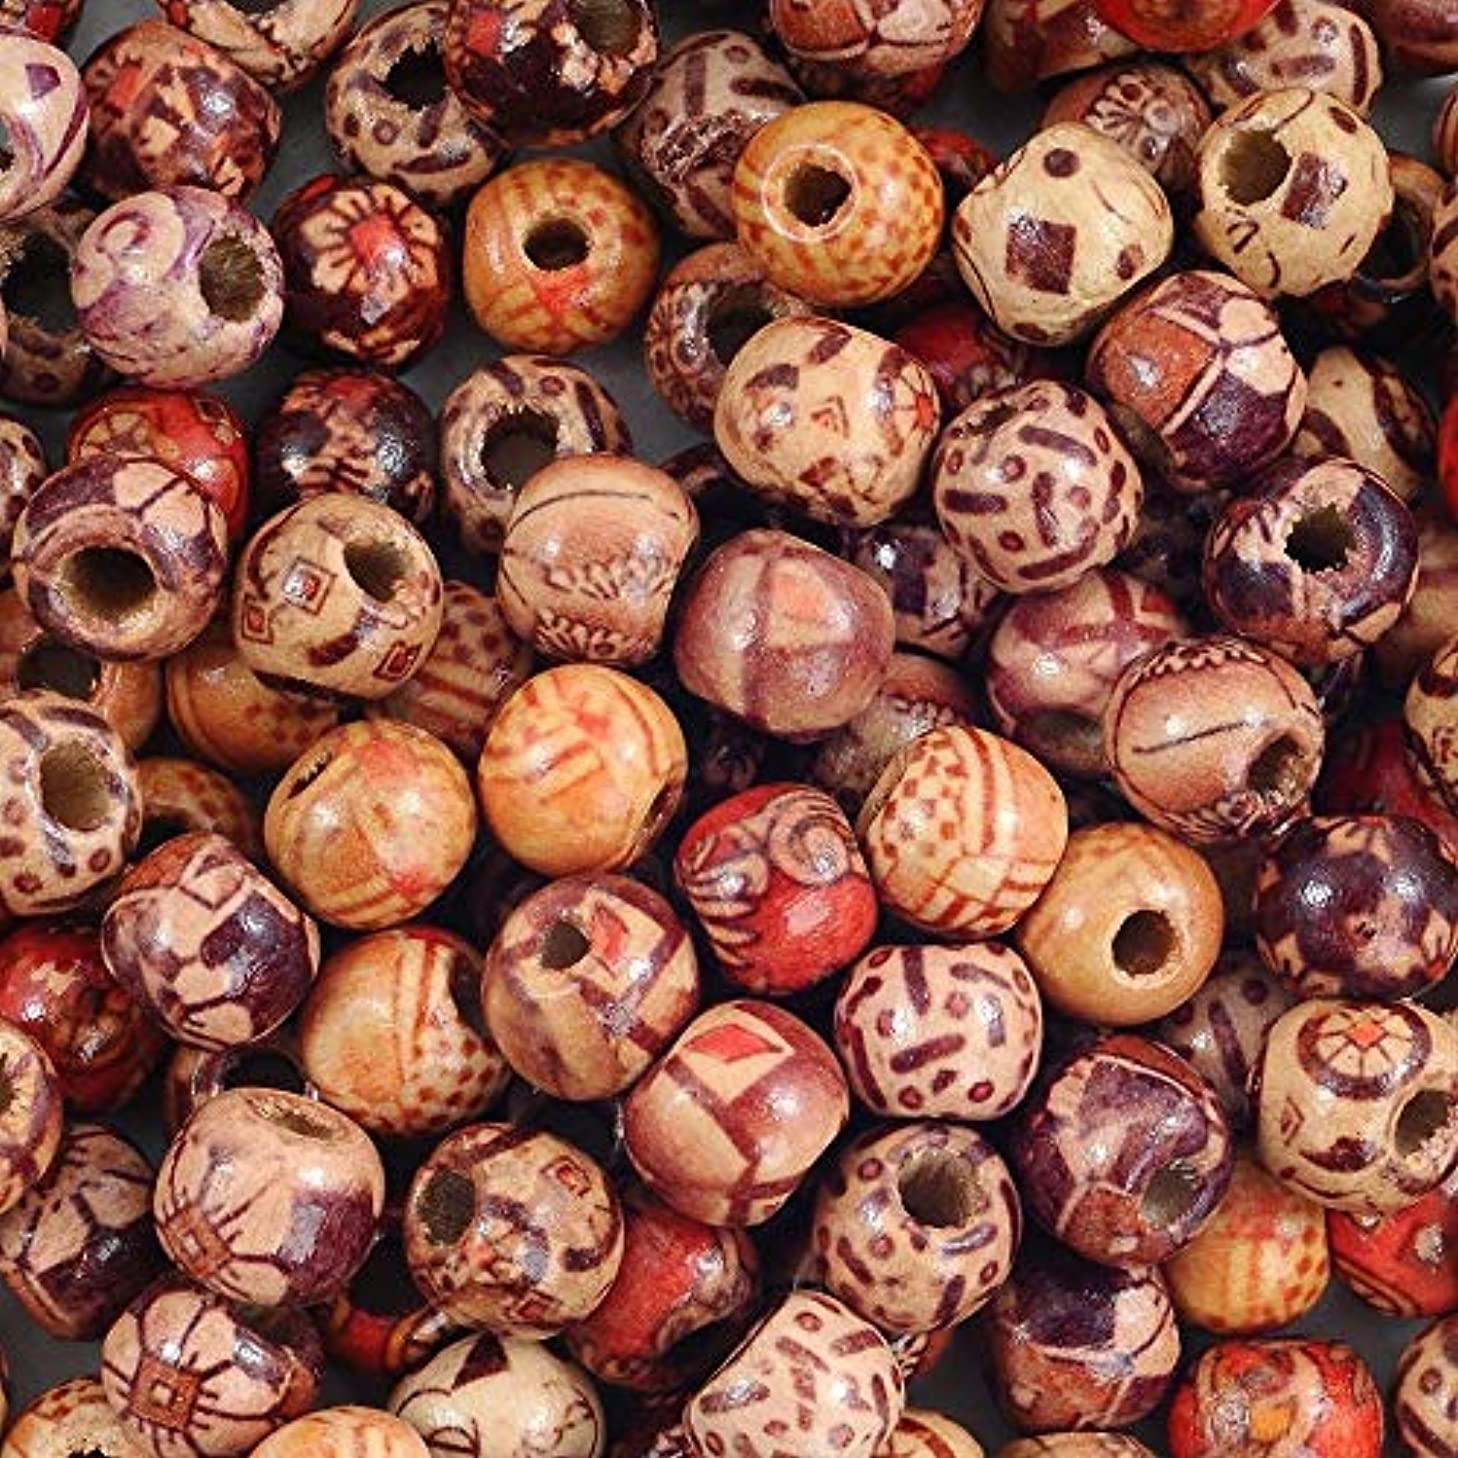 300 Pieces 12mm Assorted Painted Barrel Wooden Beads, Beading DIY Loose Wooden Beads